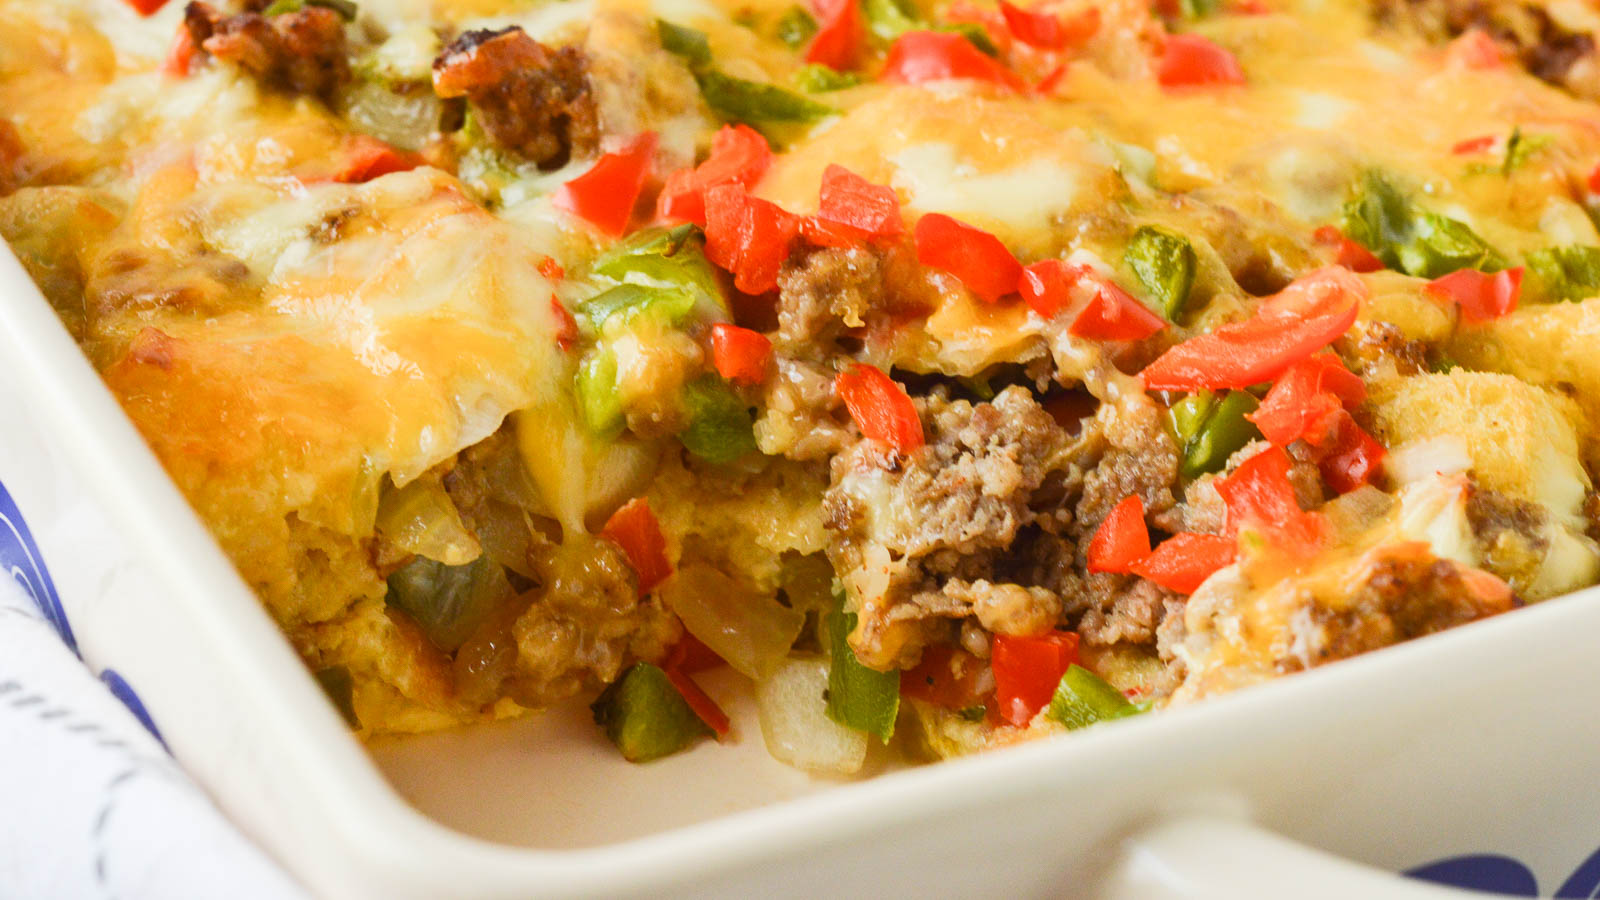 A bready sausage and egg casserole with red and green bell peppers and loads of cheese